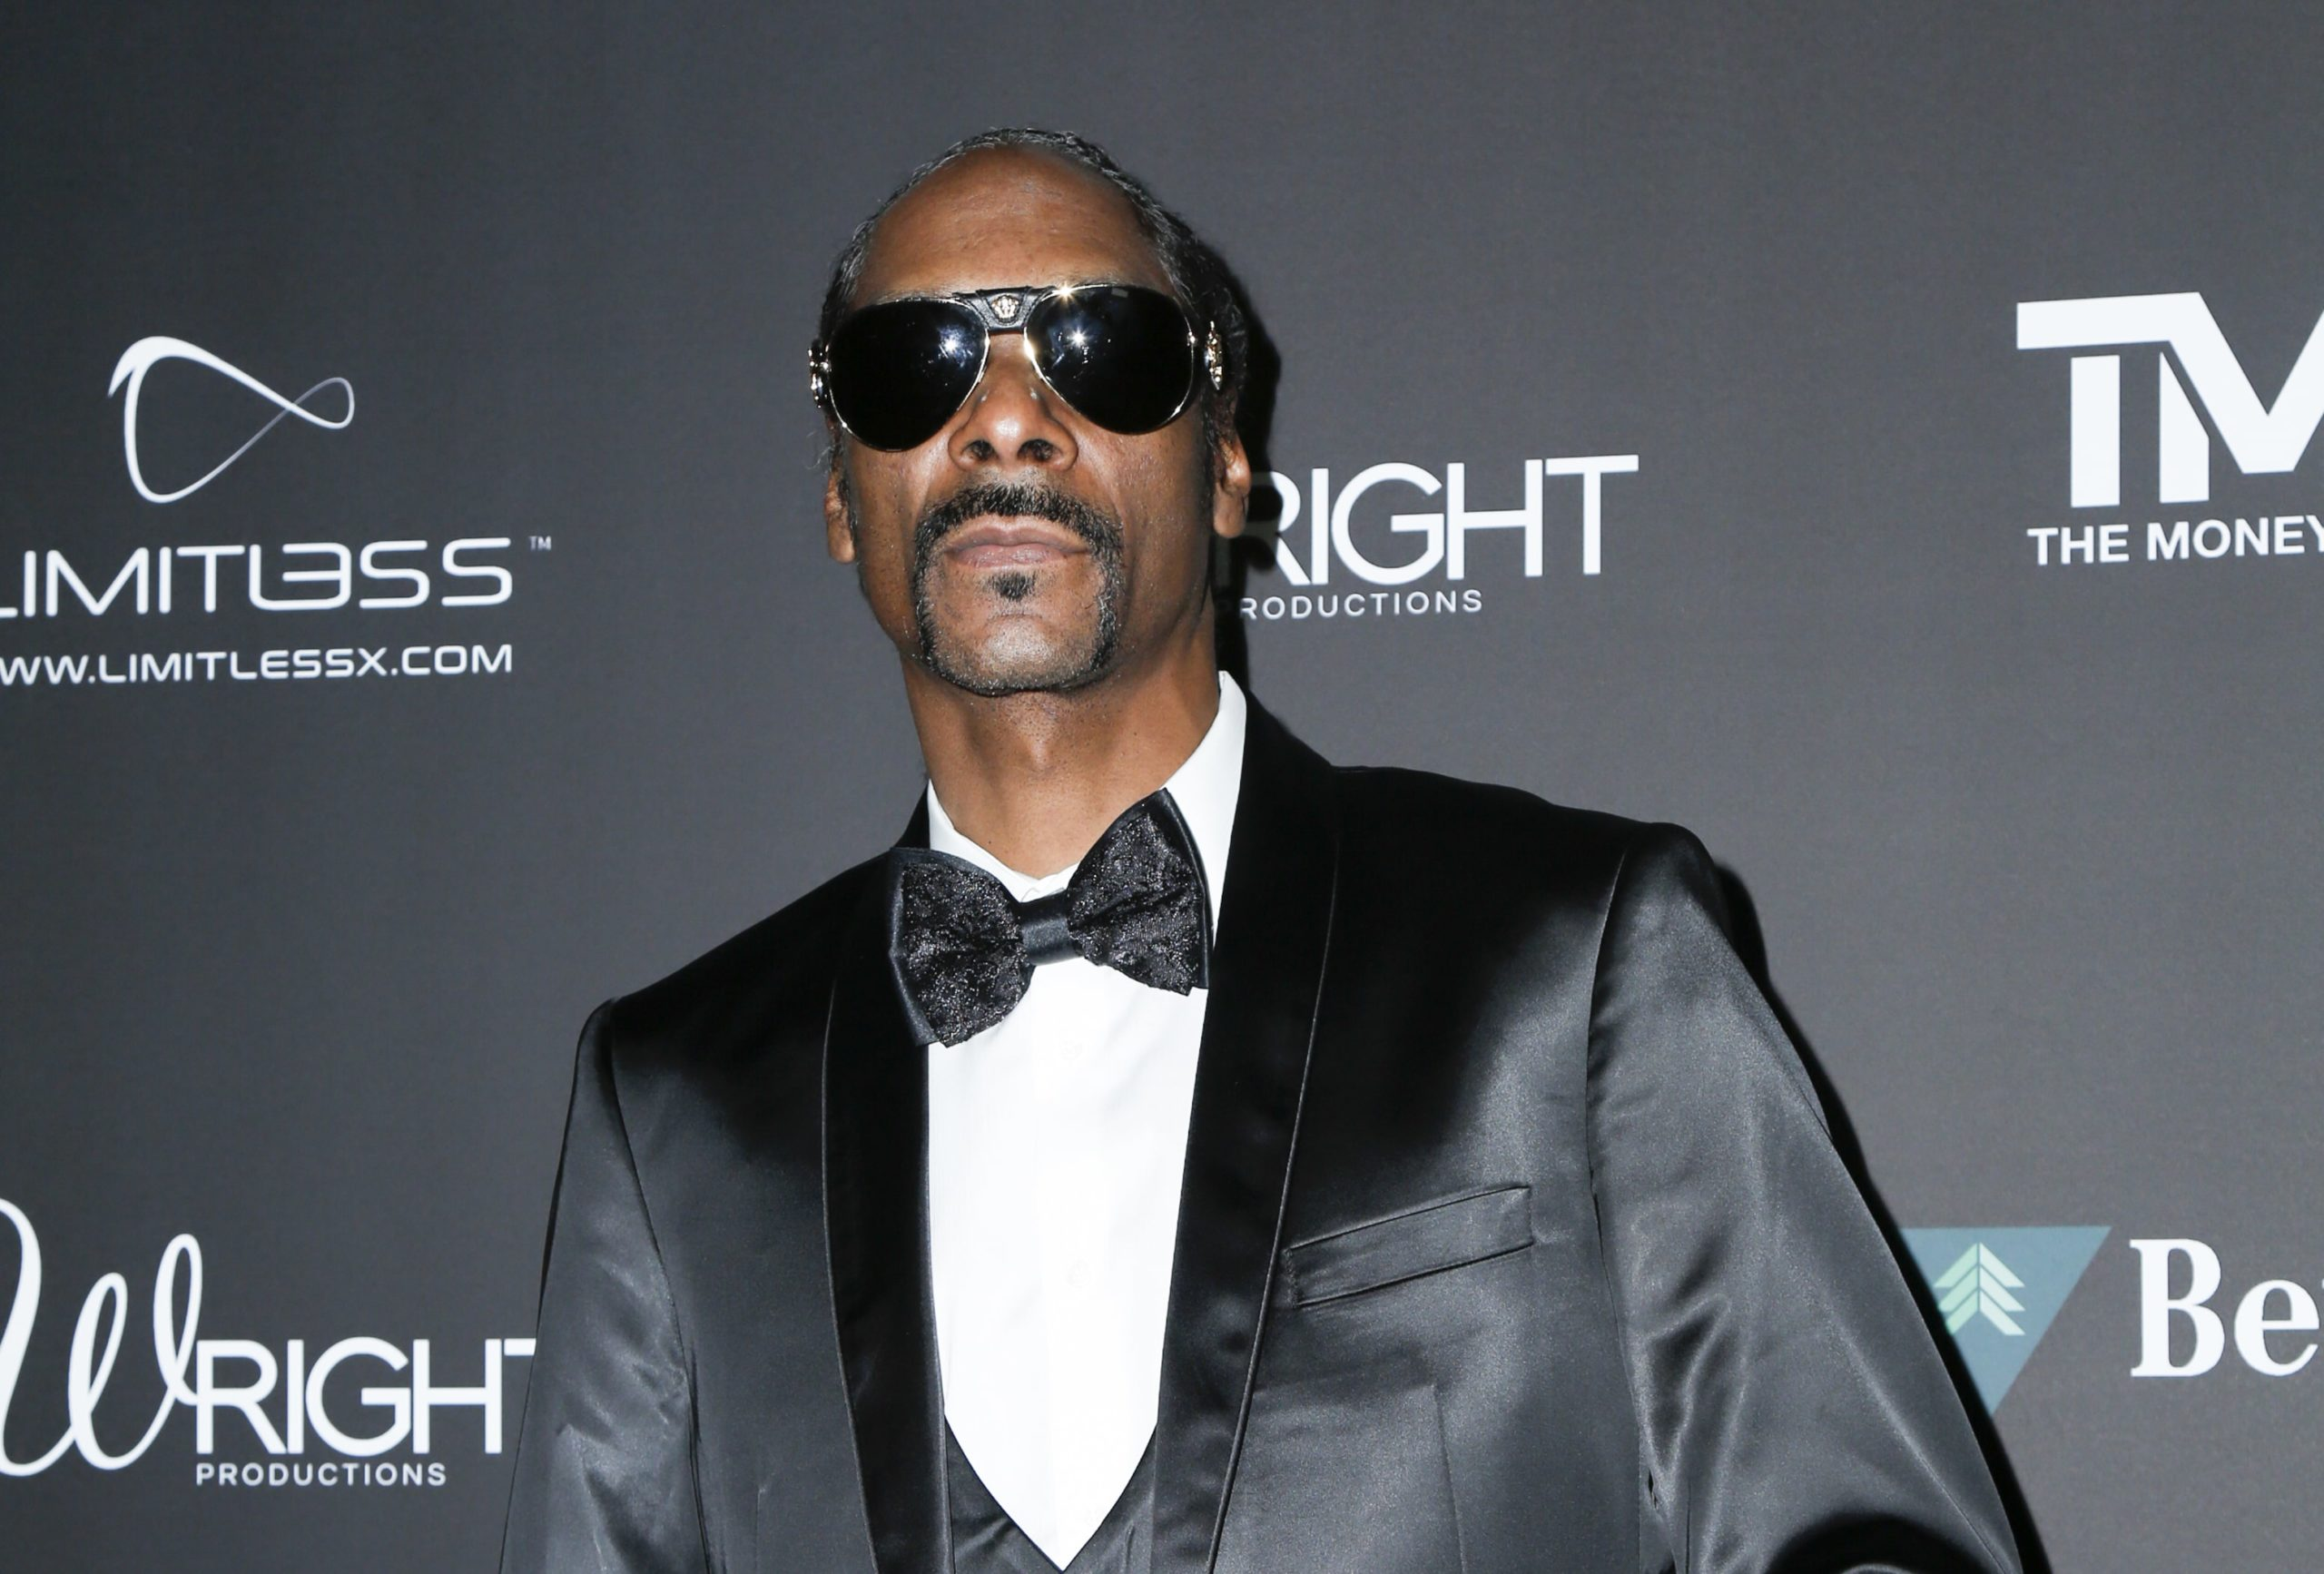 How much did Snoop Dogg get for the Just Eat advert?